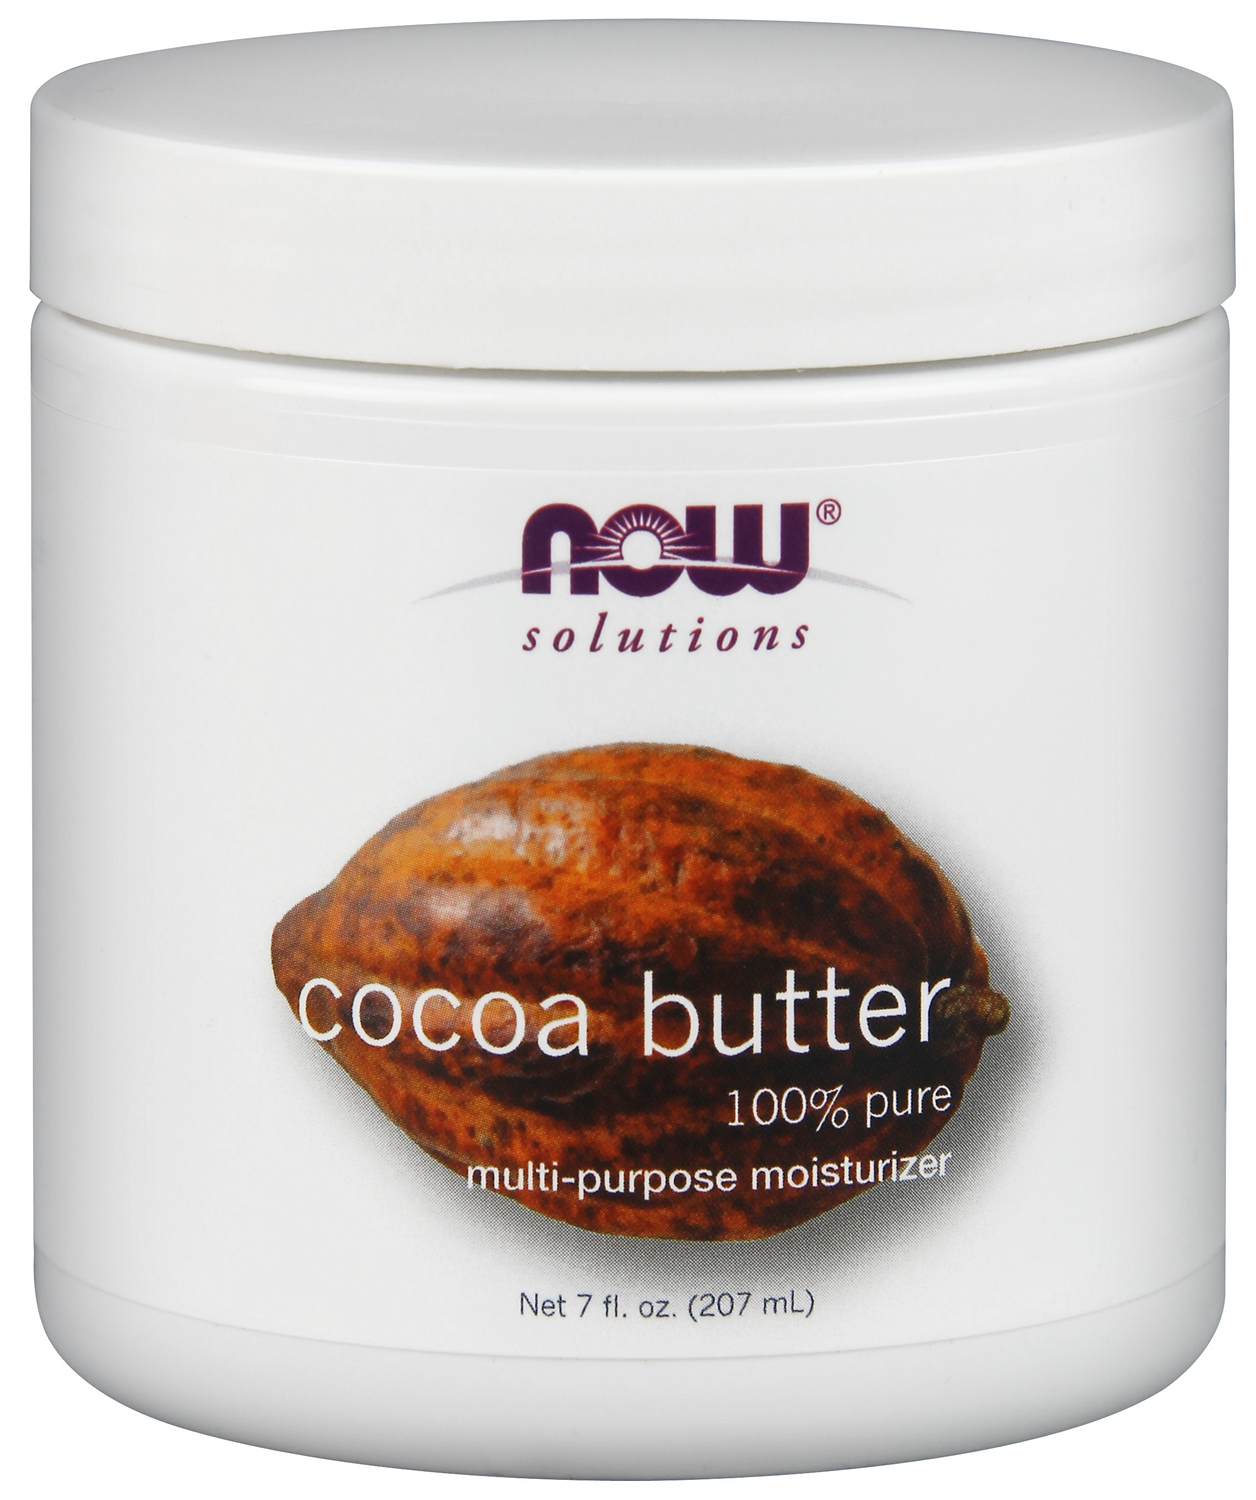 Cocoa Butter 7 fl oz (207 ml) by NOW